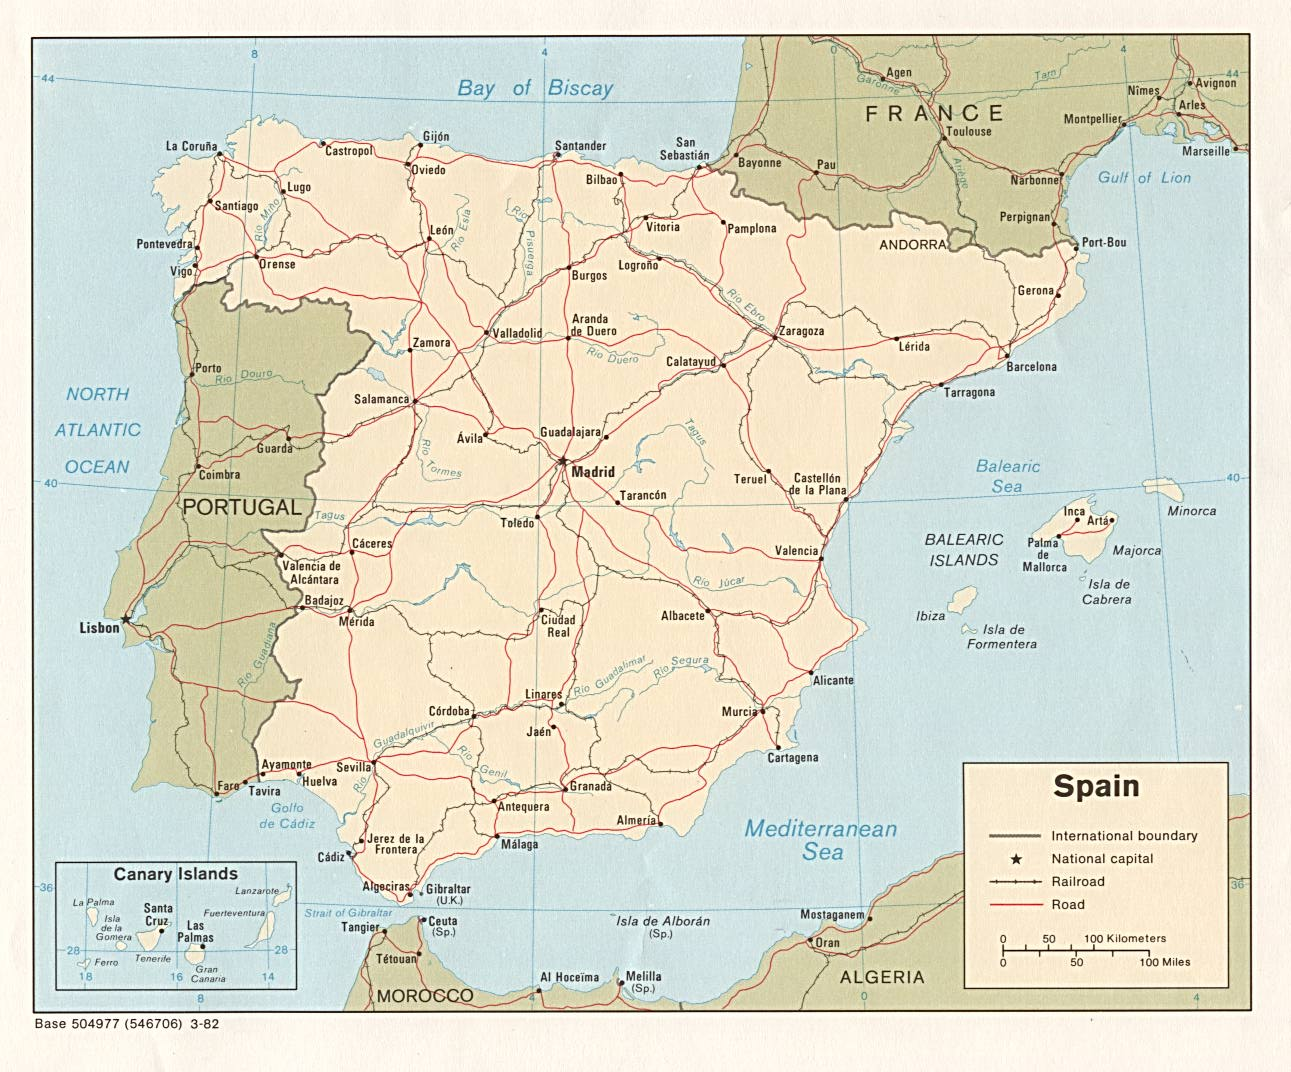 Spain Maps - Perry-Castañeda Map Collection - UT Liry Online on map of equatorial guinea in spanish, map of barcelona in spanish, map of paraguay in spanish, map of cities in espana, map of countries that speak spanish, map of the world in spanish, map of china in spanish, map of dominican republic in spanish, map of north america in spanish, map of spanish speaking countries, map of egypt in spanish, map of spanish speaking world, map of united states in spanish, map of austria in spanish, capital of venezuela in spanish, espana capital in spanish, map of trinidad in spanish, map of continents in spanish, map of puerto rico in spanish, map of england in 1500,